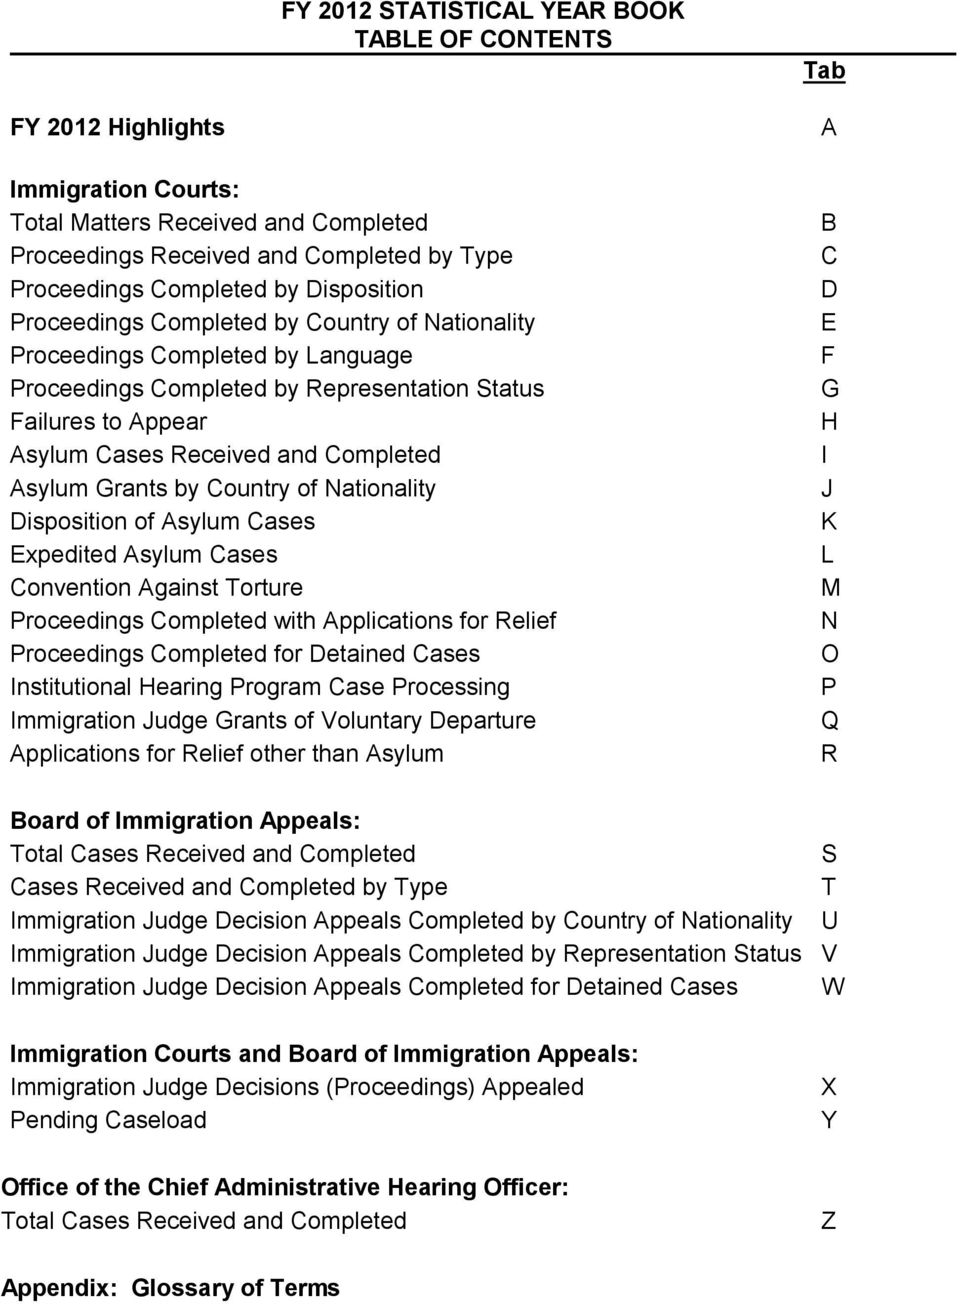 Asylum Grants by Country of Nationality Disposition of Asylum Cases Expedited Asylum Cases Convention Against Torture Proceedings Completed with Applications for Relief Proceedings Completed for